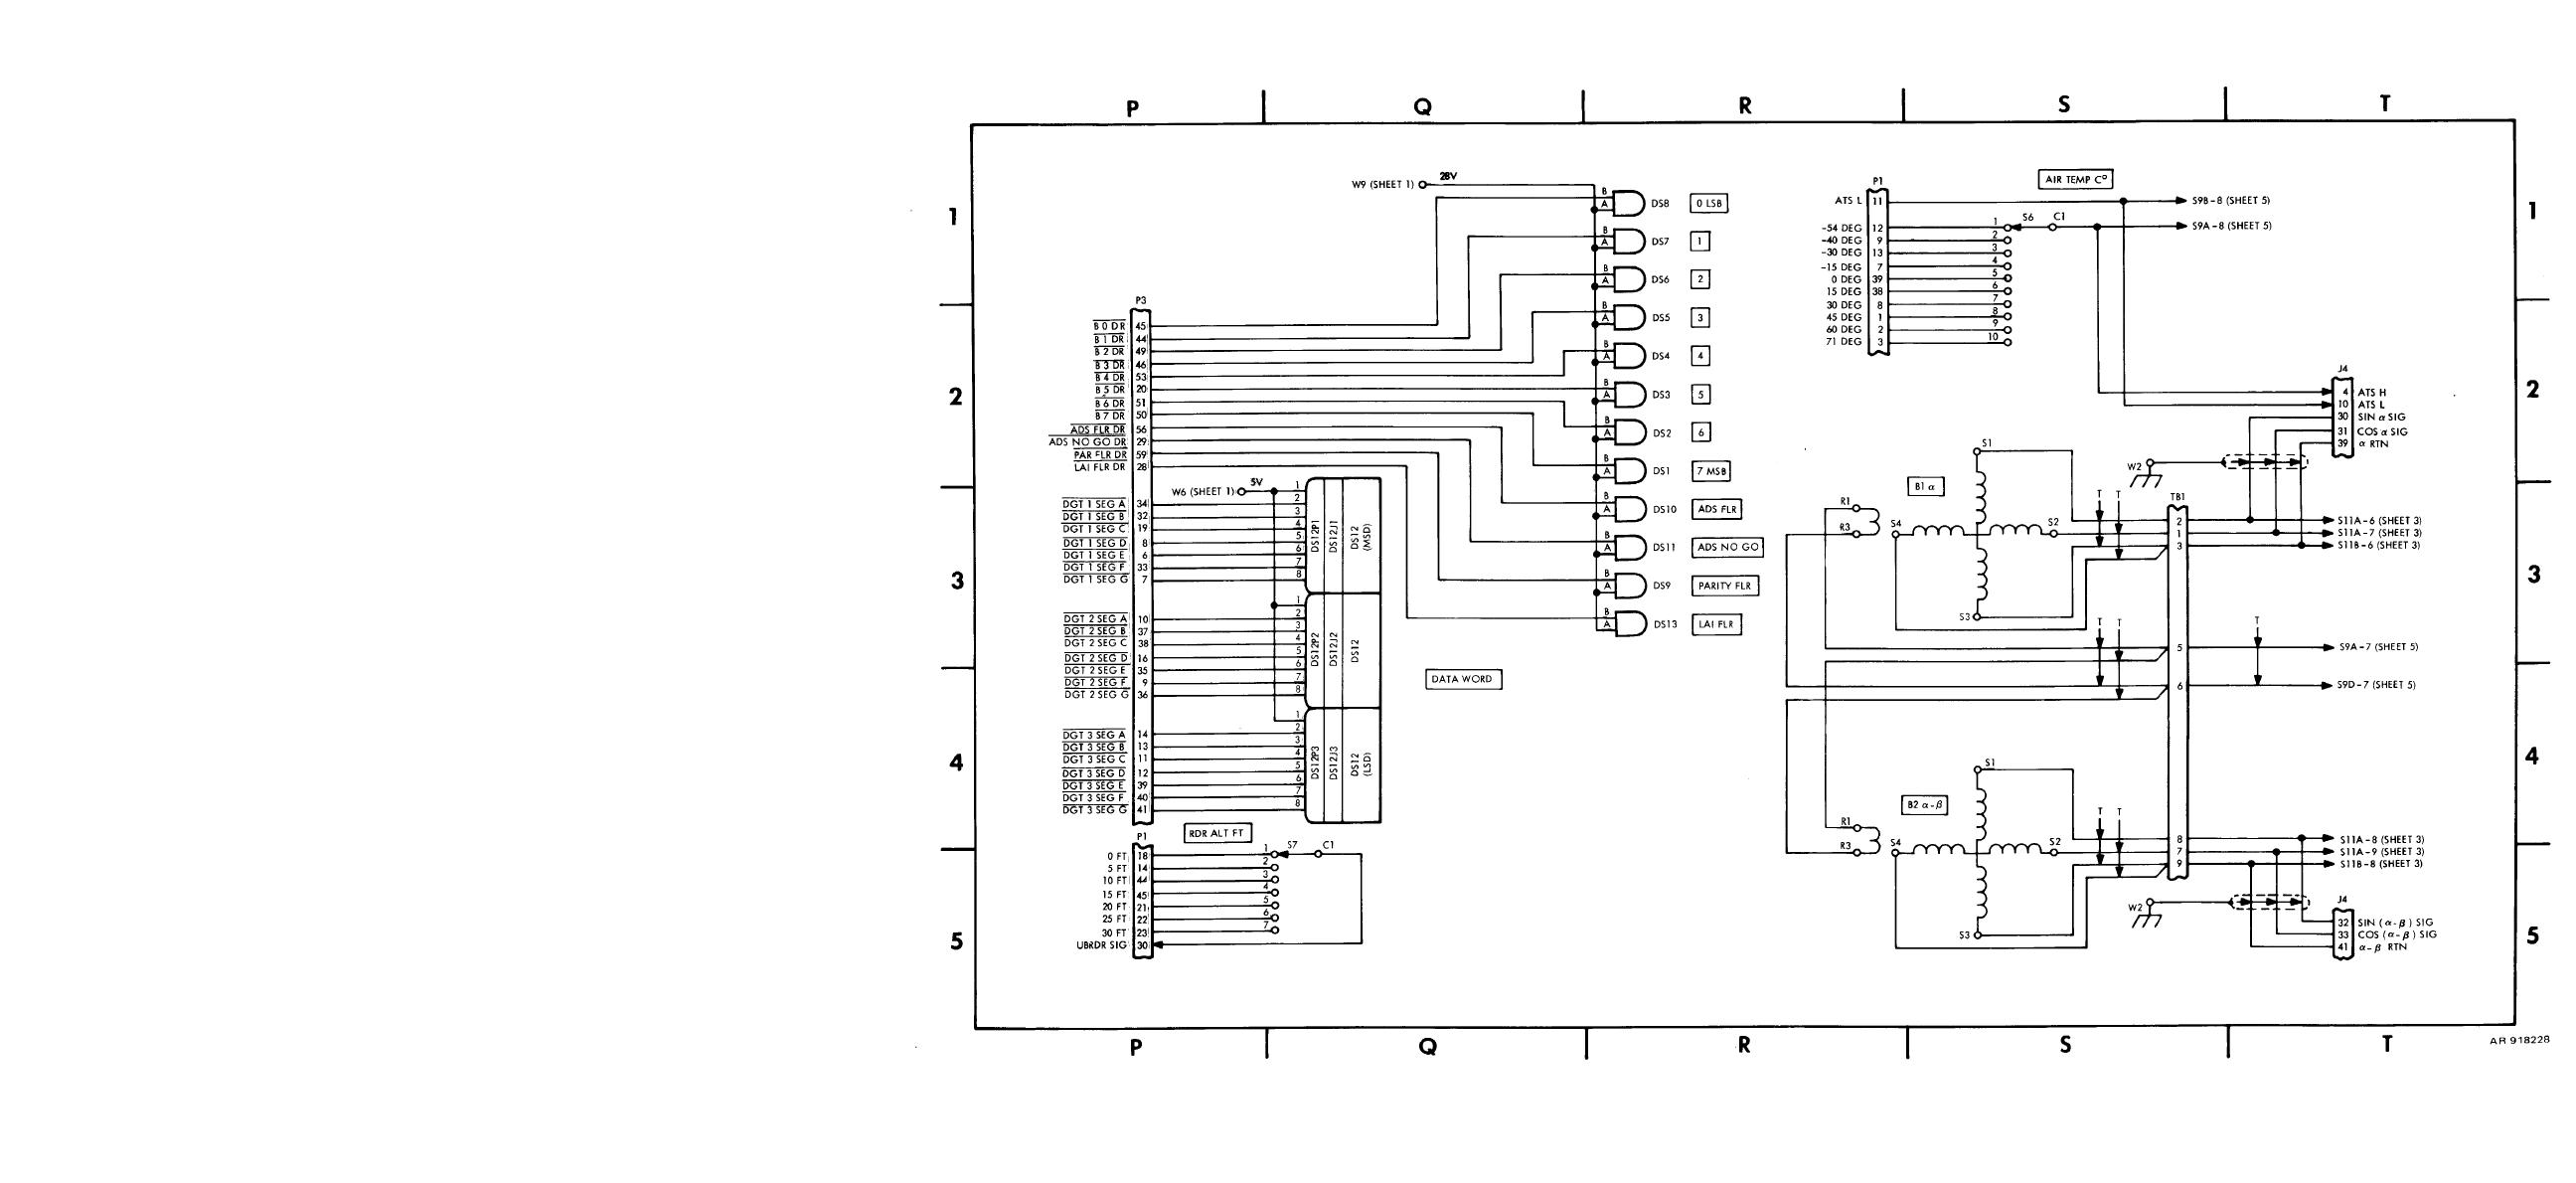 Figure Fo 1 Wiring Schematic Sheet 4 Of 5